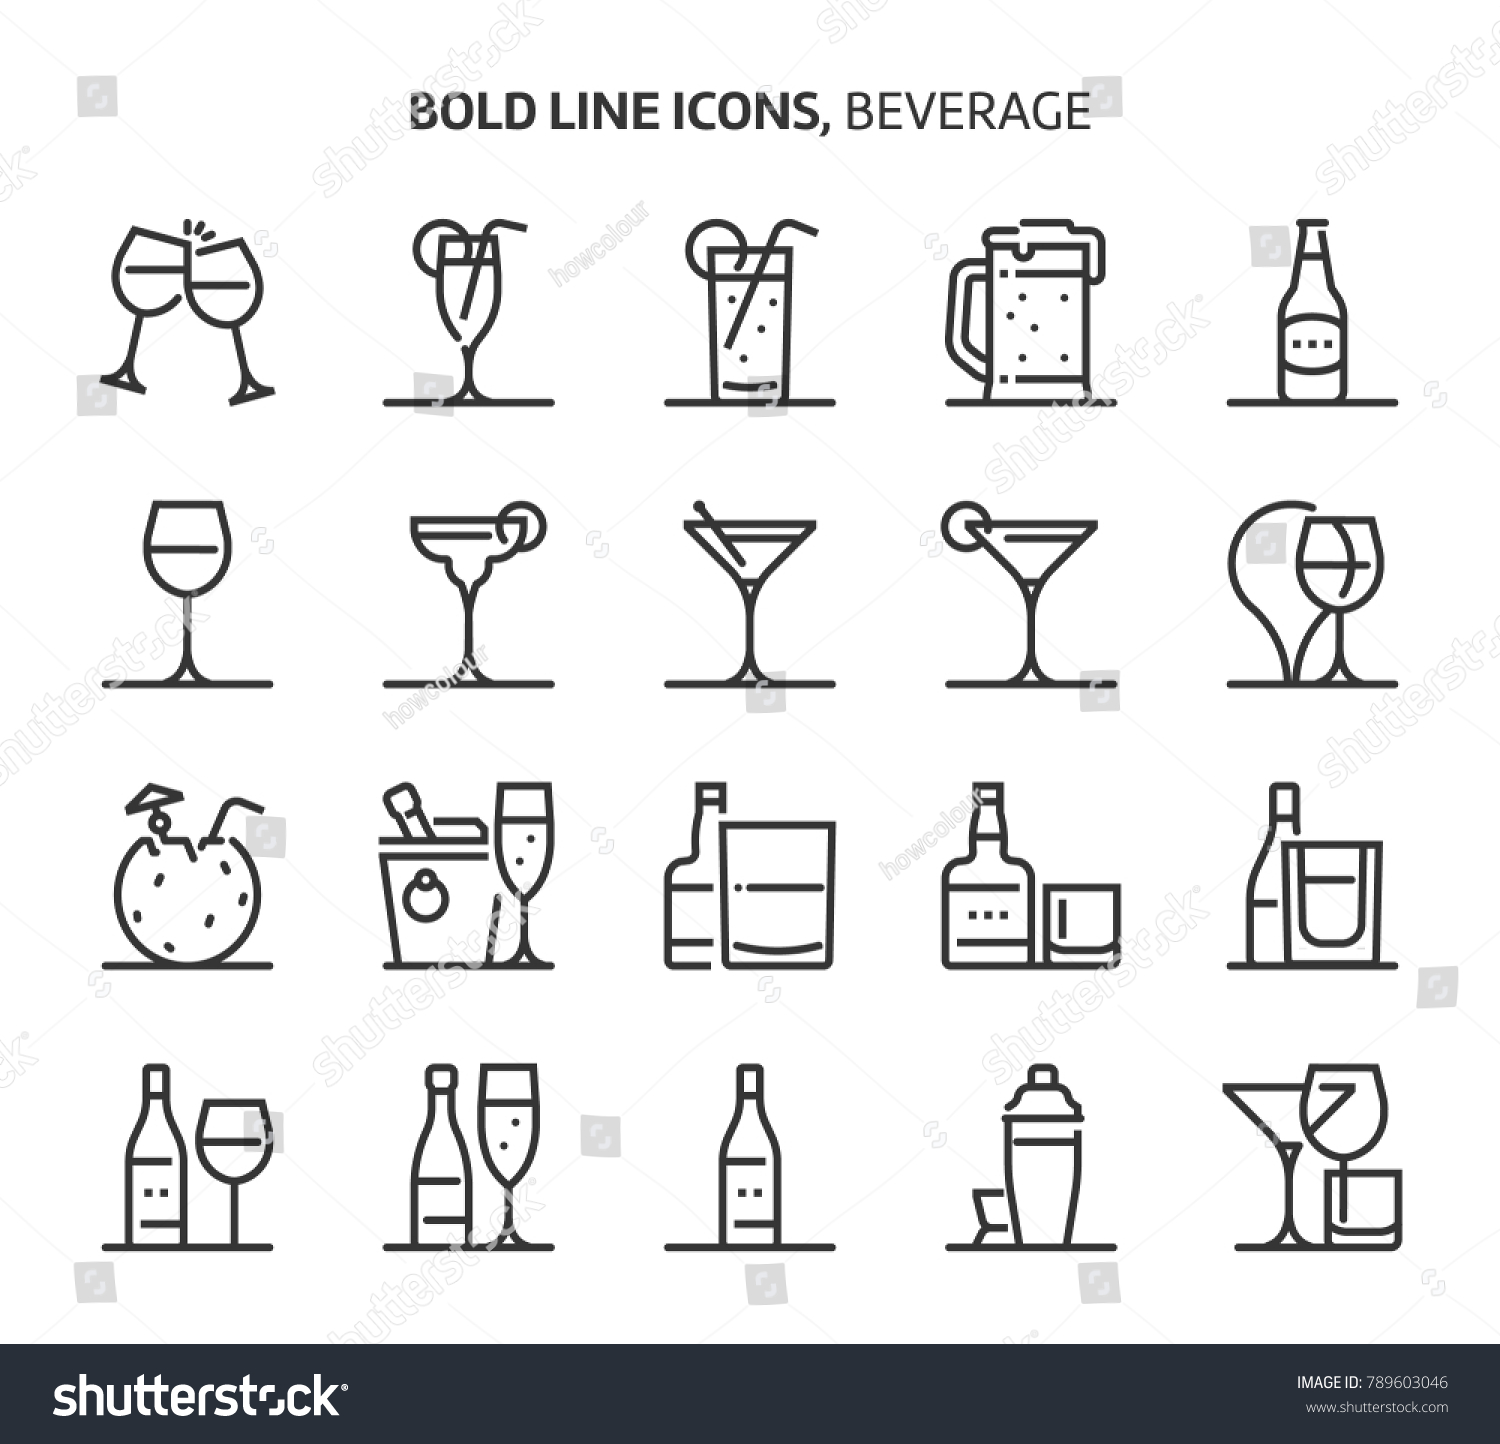 Beverage, bold line icons. The illustrations are a vector, editable stroke, 48x48 pixel perfect files. Crafted with precision and eye for quality.